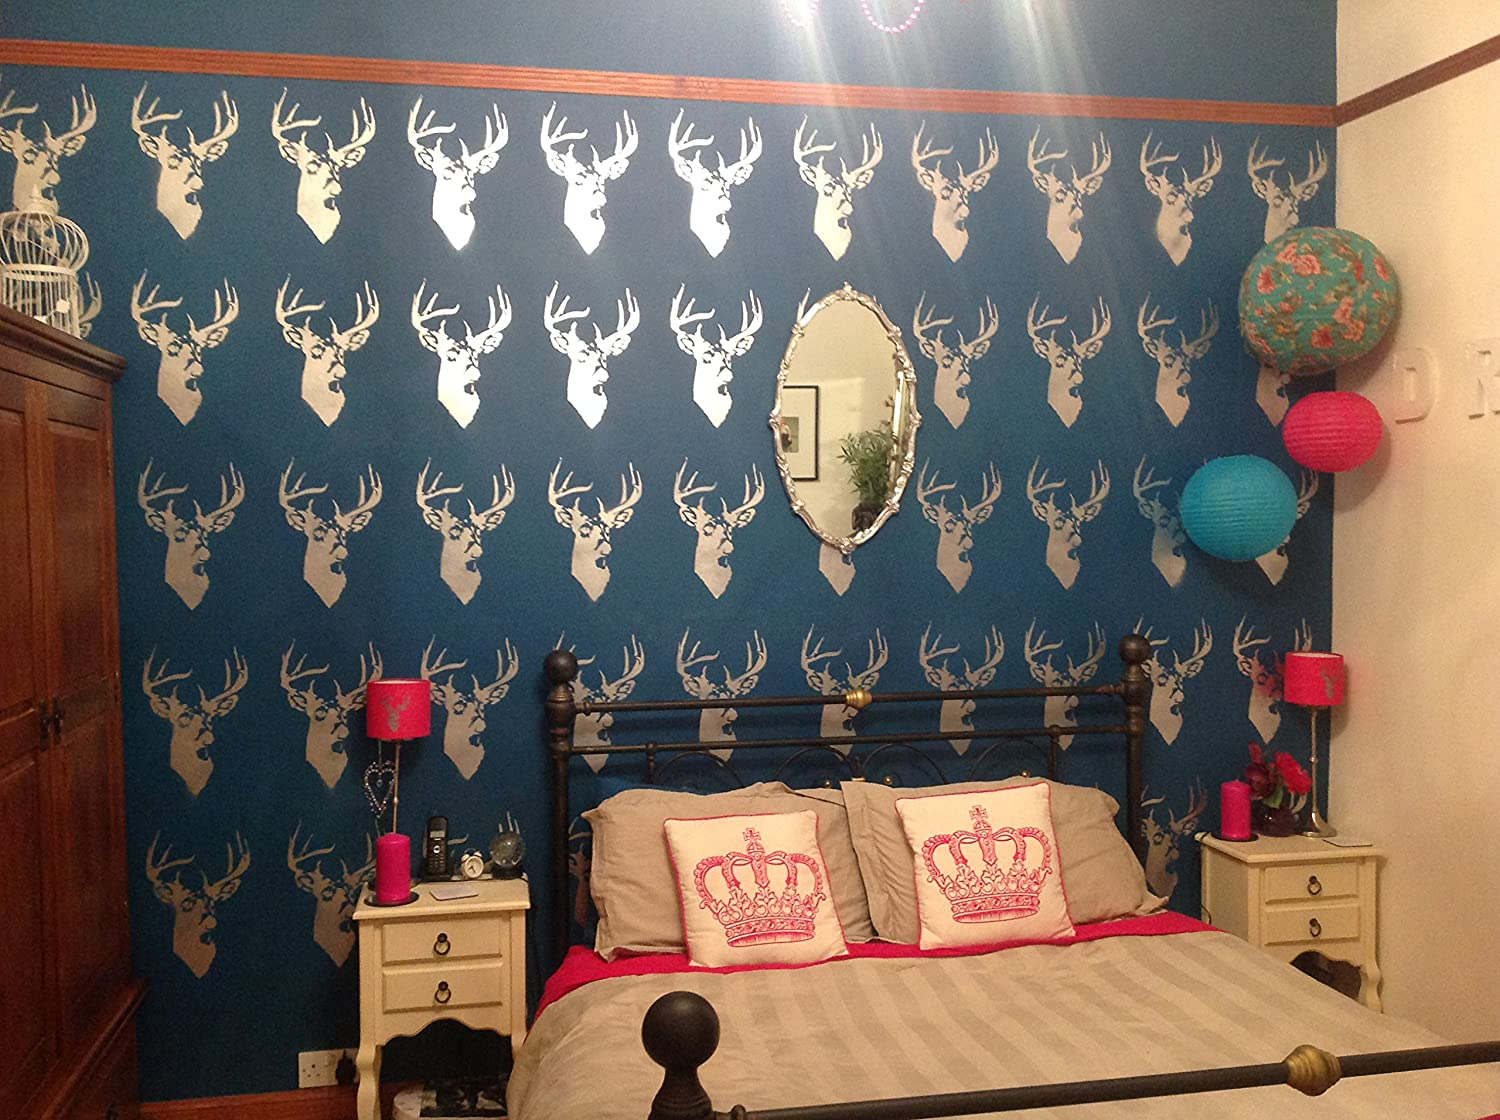 Stag Head Home Decorating /& Craft Stencil XS//11X17CM Paint Stags on Walls Fabrics and Furniture 190 mylar Reusable.